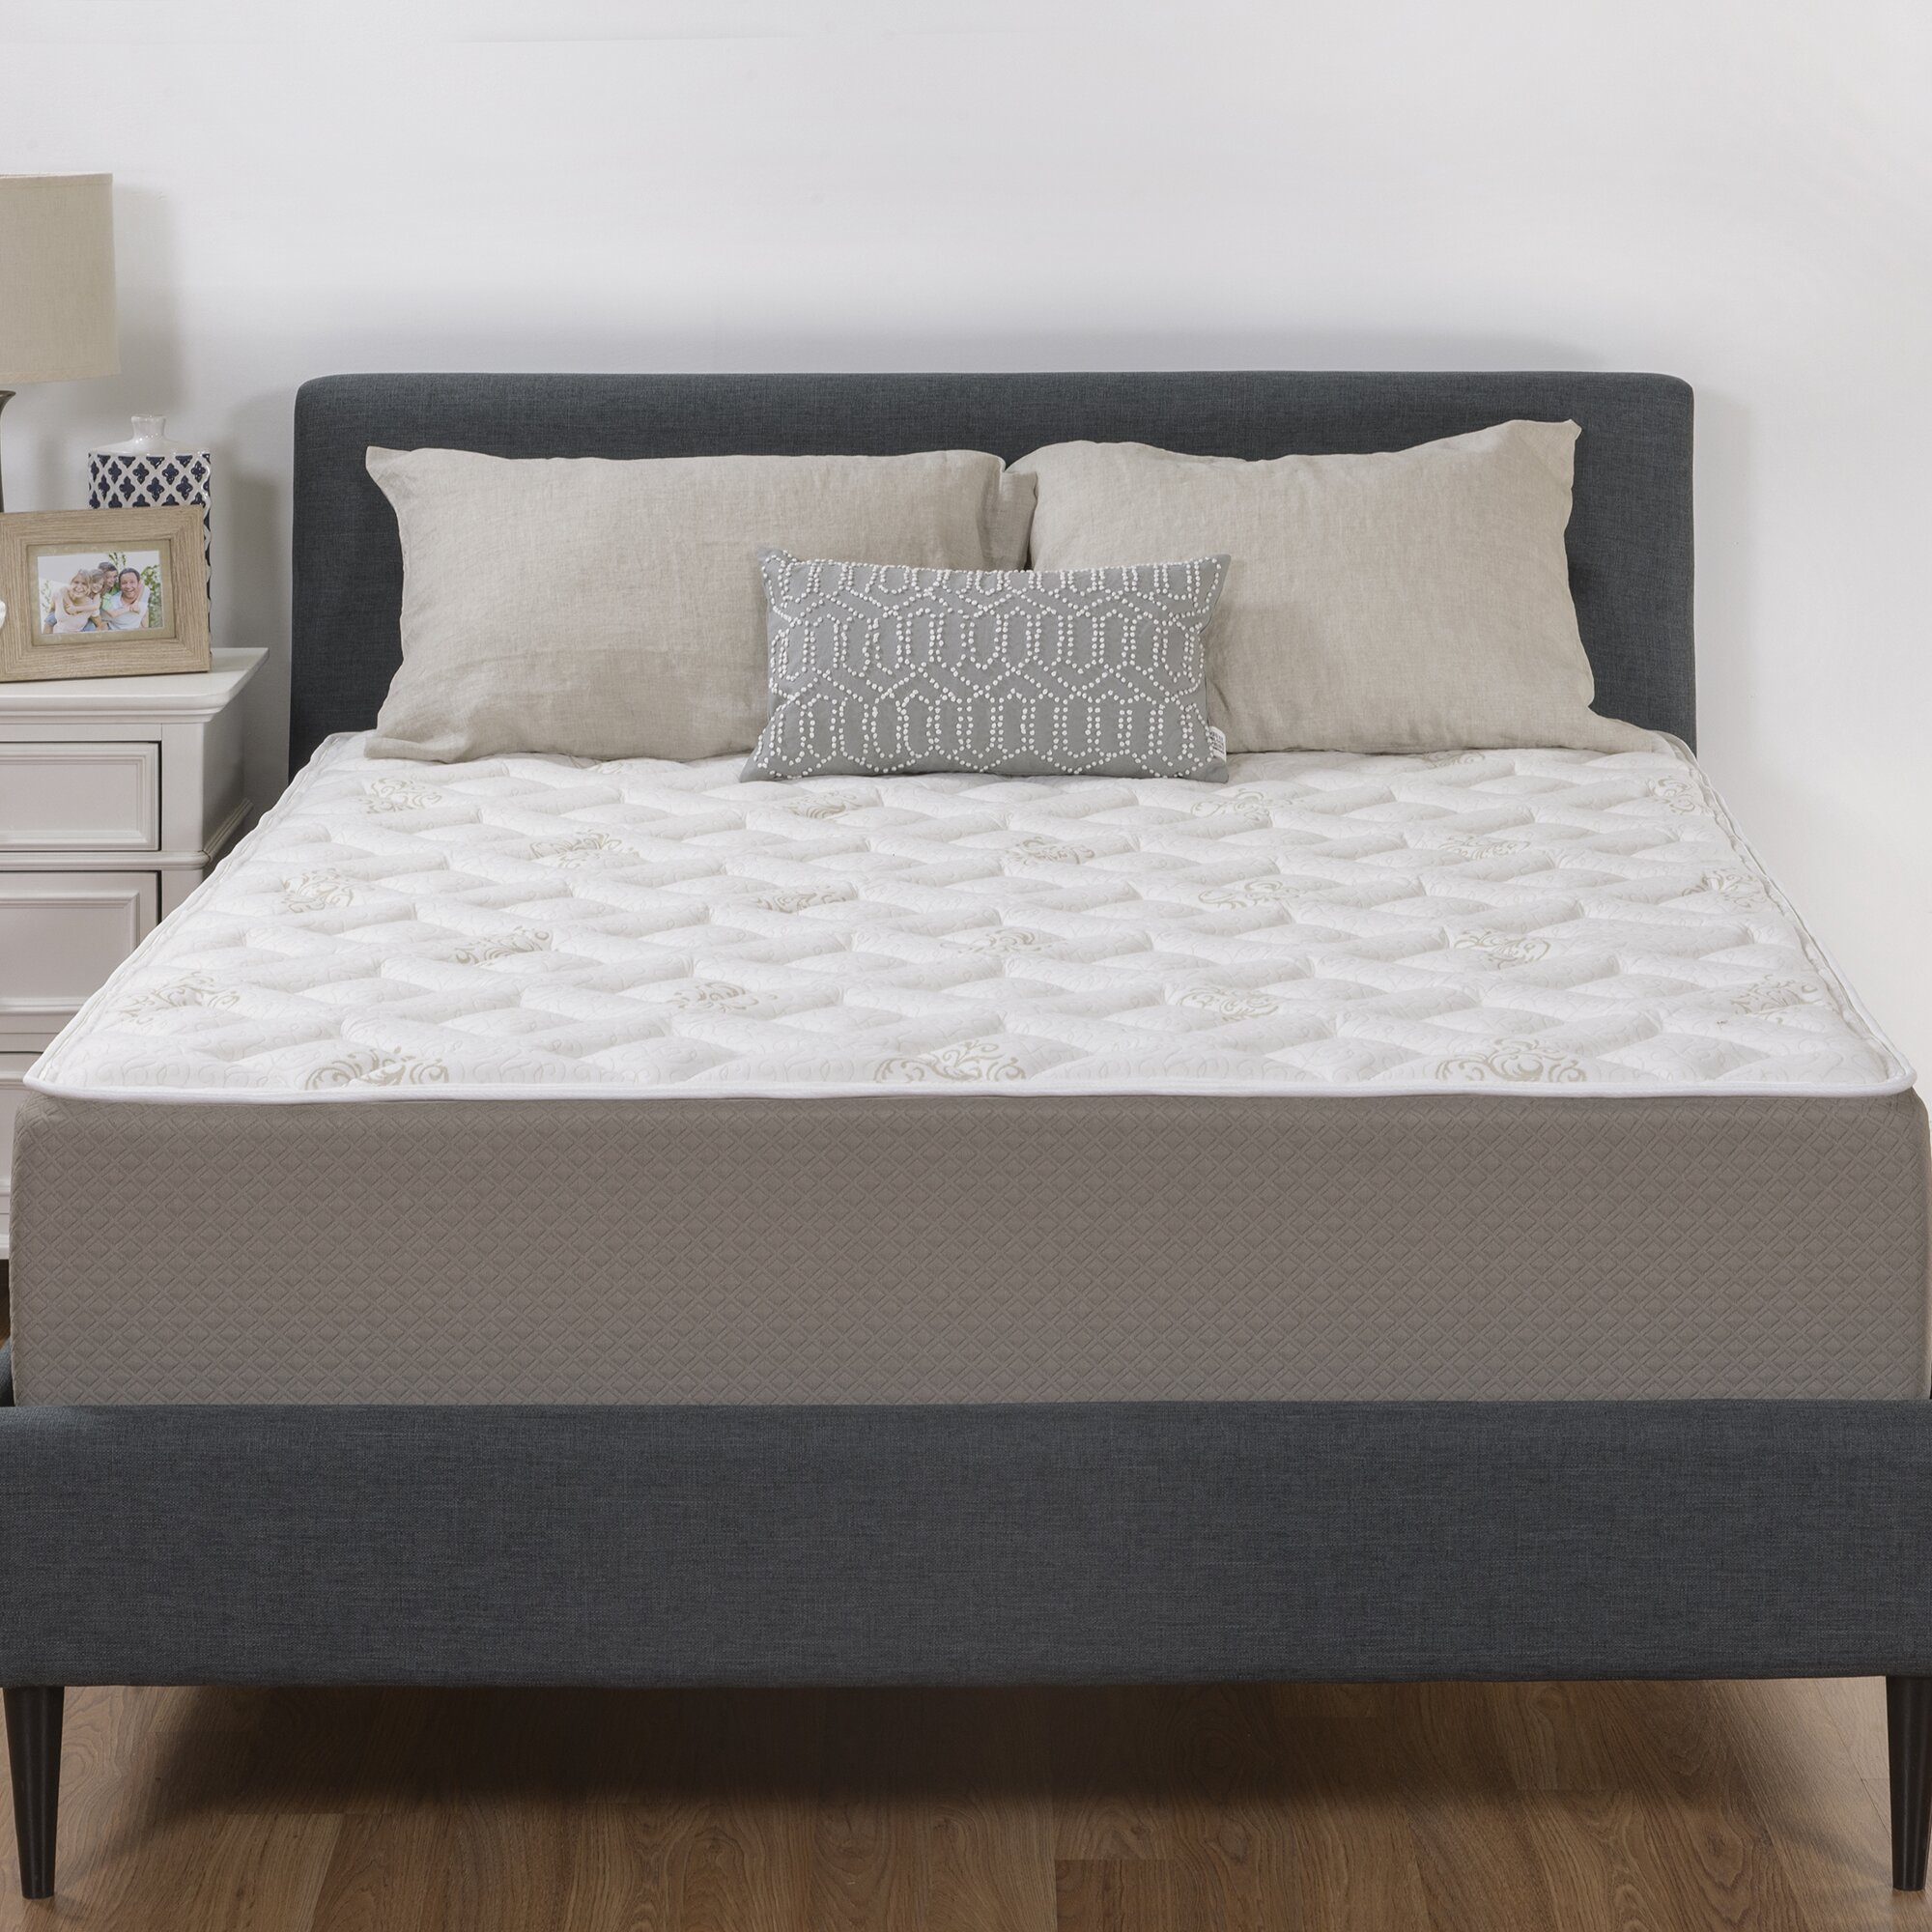 Serenia Sleep 12 Gel Memory Foam Mattress Reviews